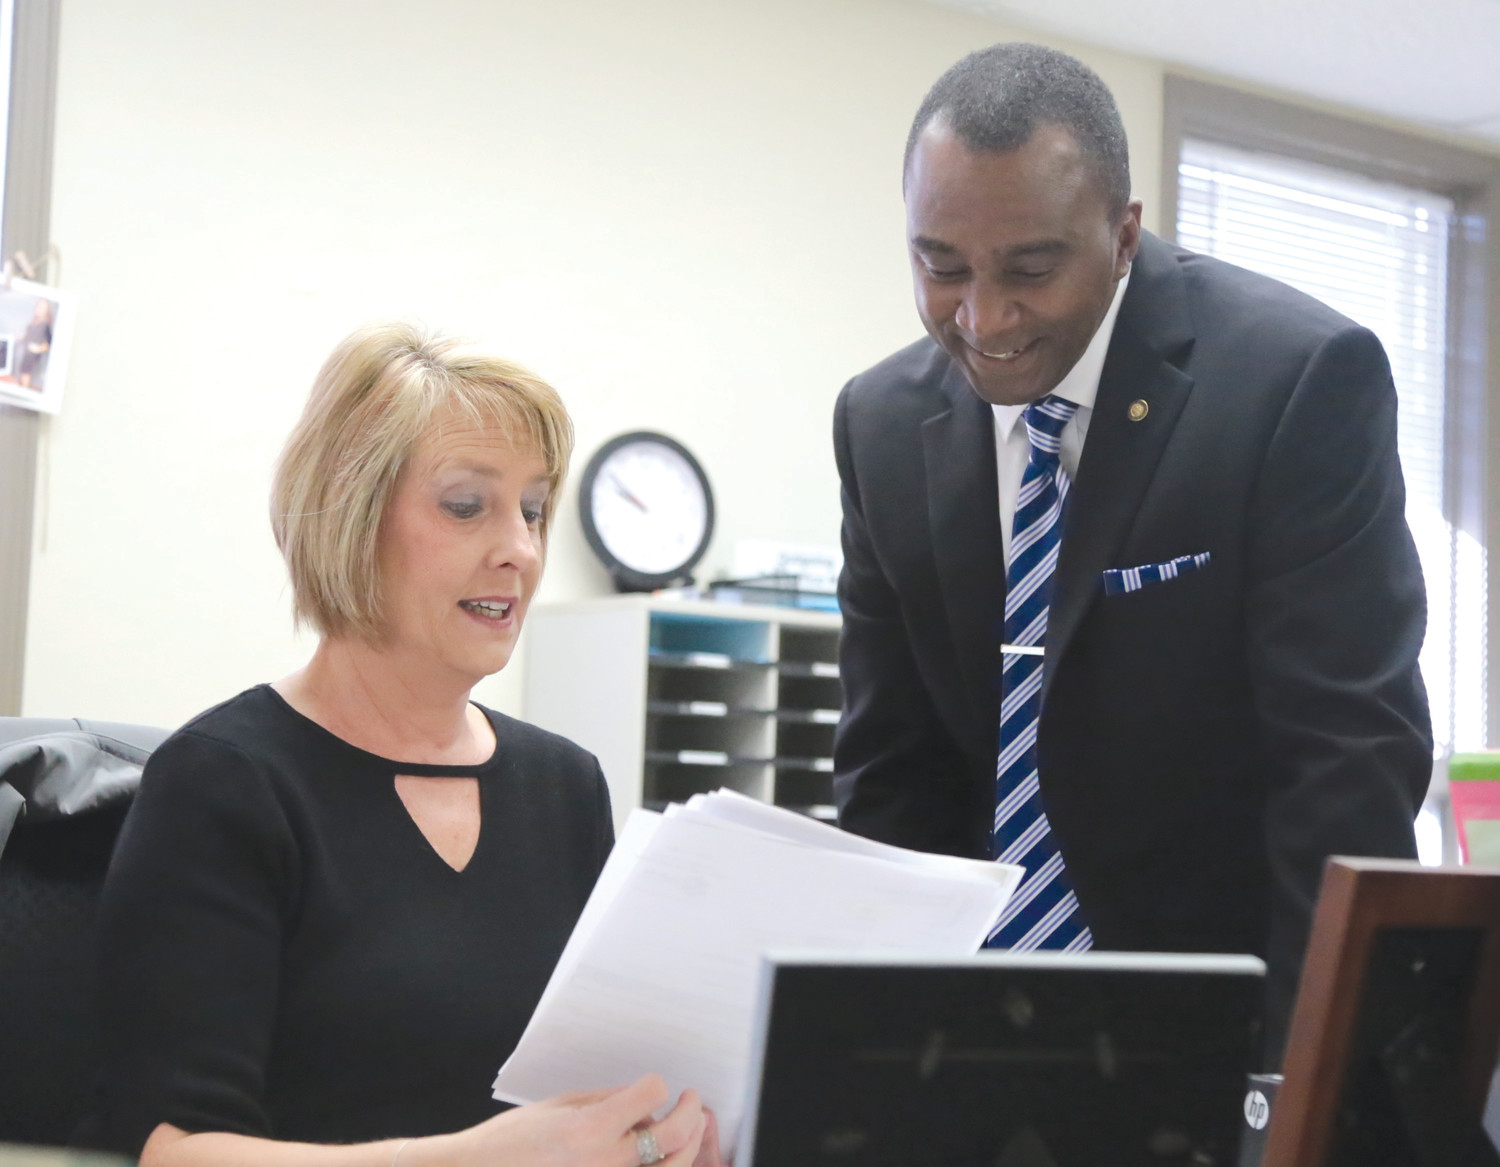 New Santee-Lynches Regional Council of Governments Executive Director Chris McKinney, right, goes through materials with Administrative Assistant Becky Minegar on Tuesday at the COG's headquarters, 2525 Corporate Way.